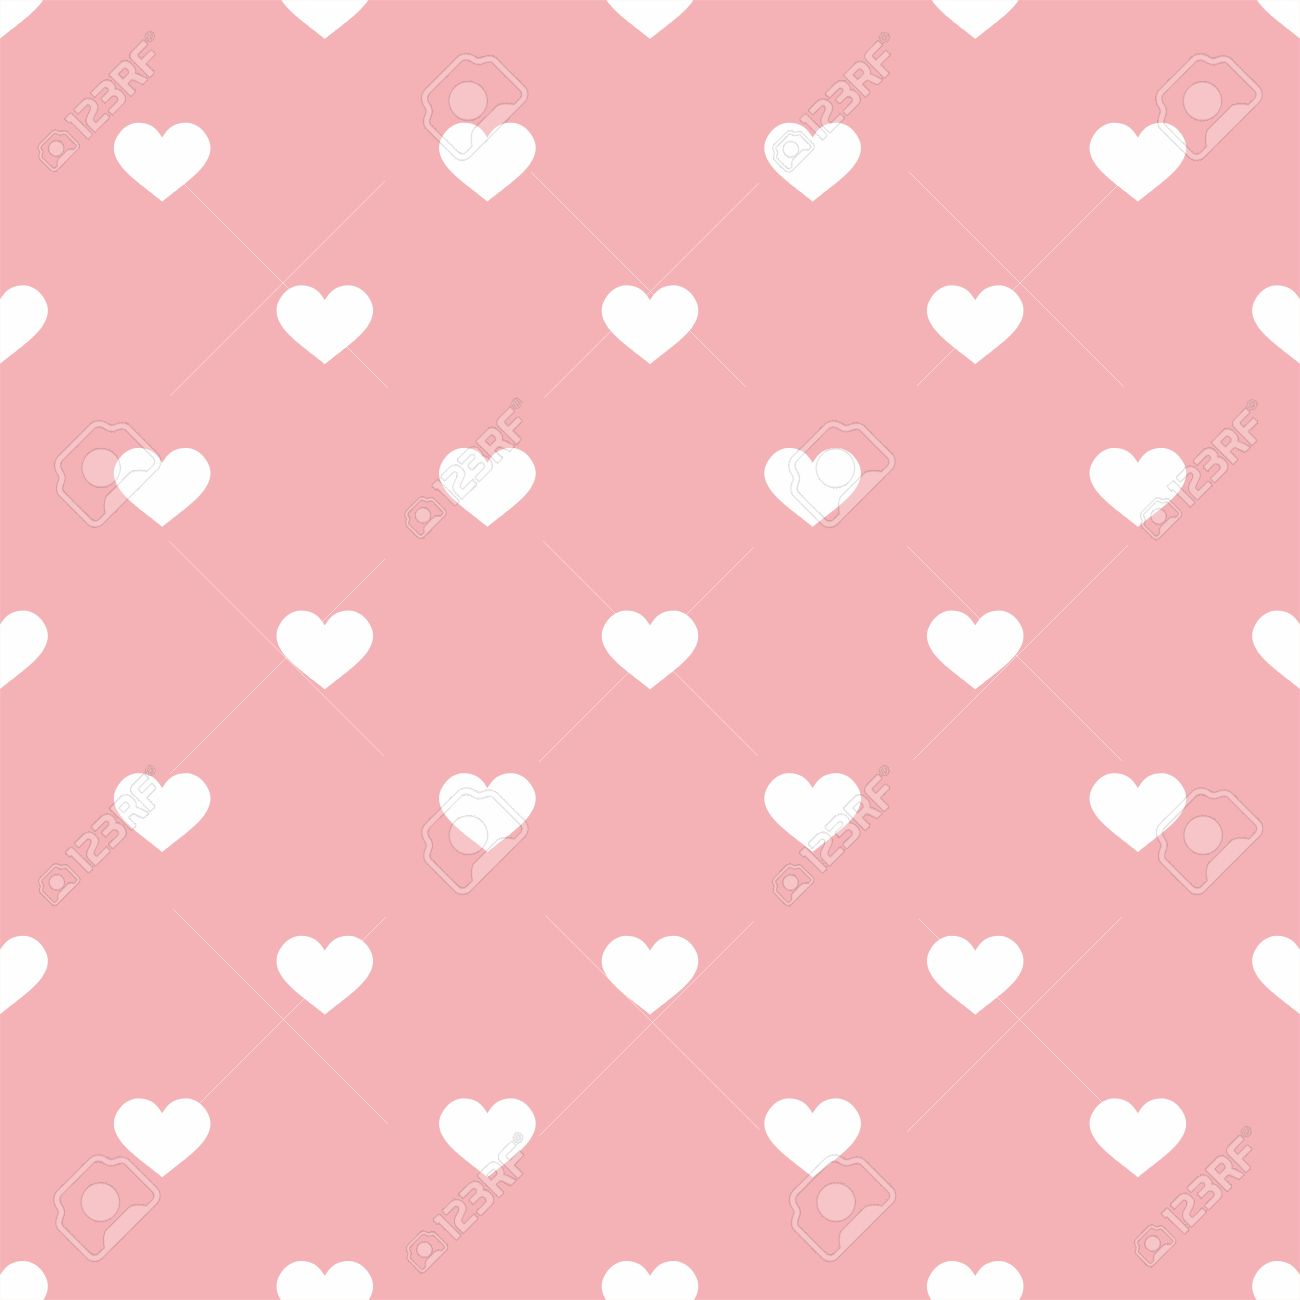 Tile Valentine Vector Pattern With Small White Hearts On Pink